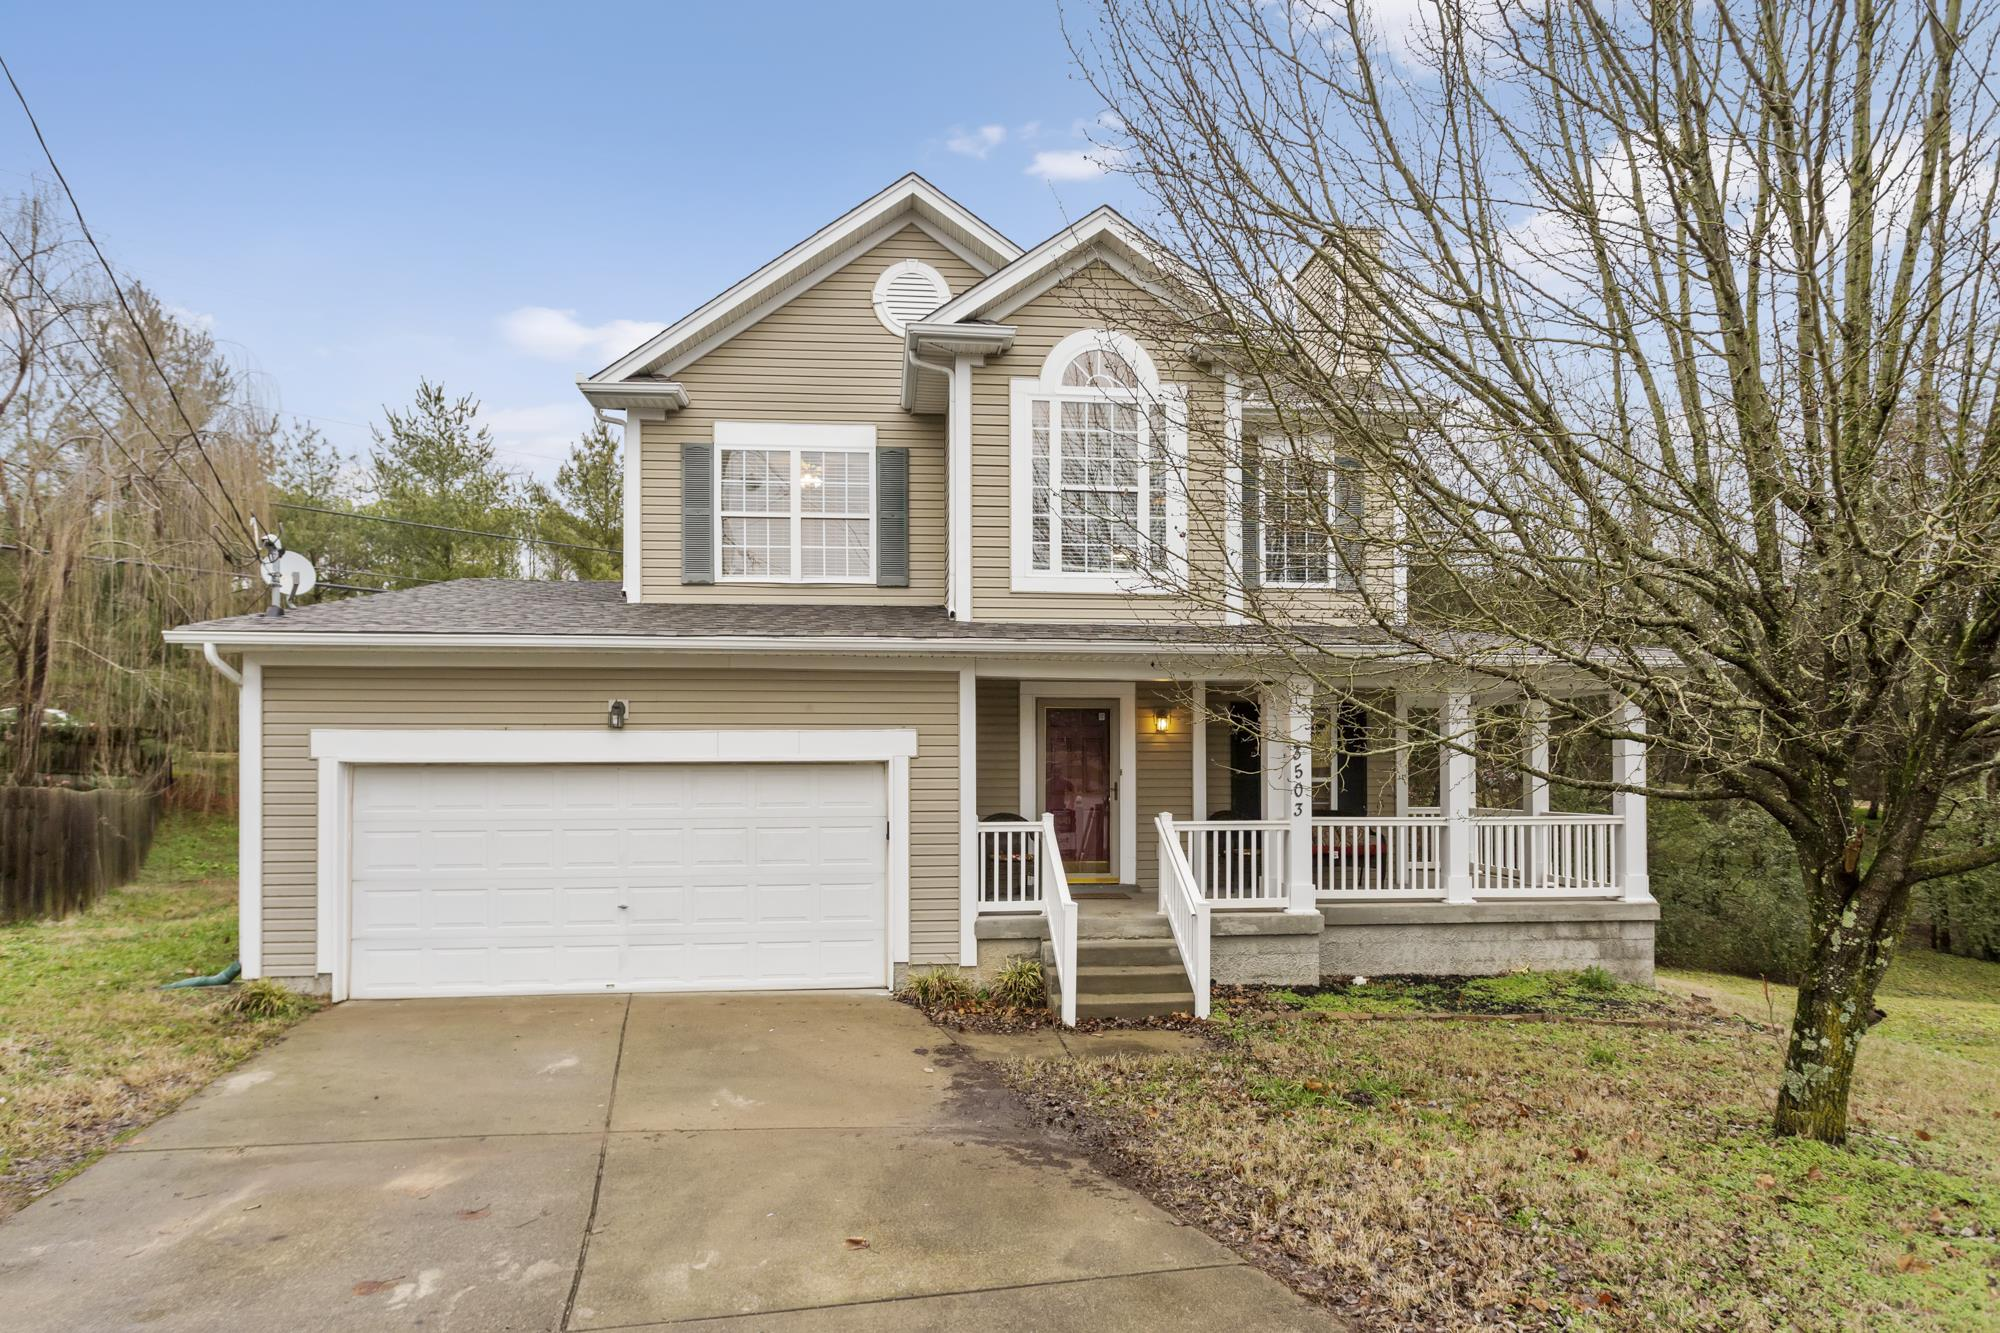 3503 Longhaven Xing, Nashville-Antioch in Davidson County County, TN 37013 Home for Sale